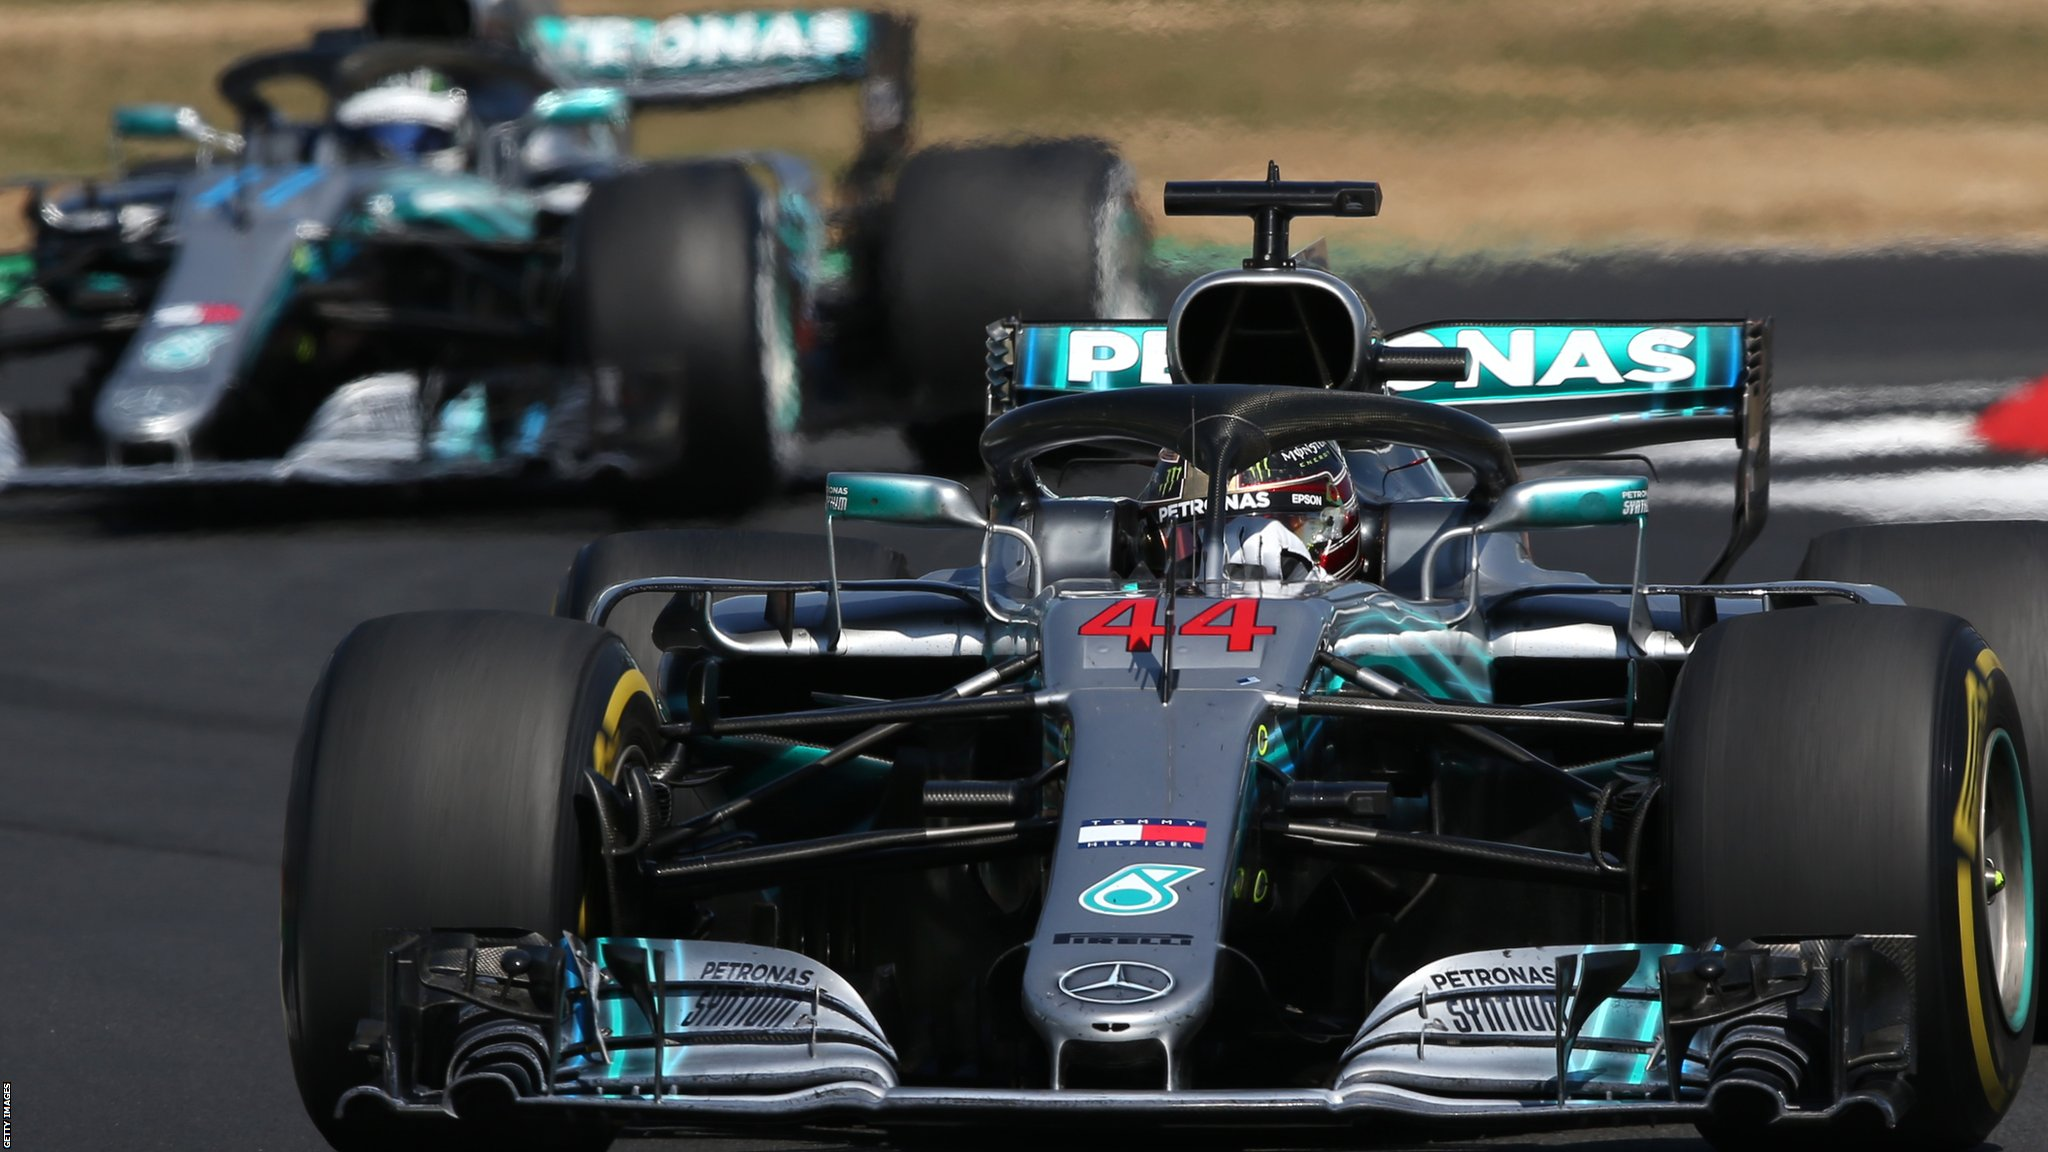 German Grand Prix: We've made too many mistakes - Mercedes boss Toto Wolff